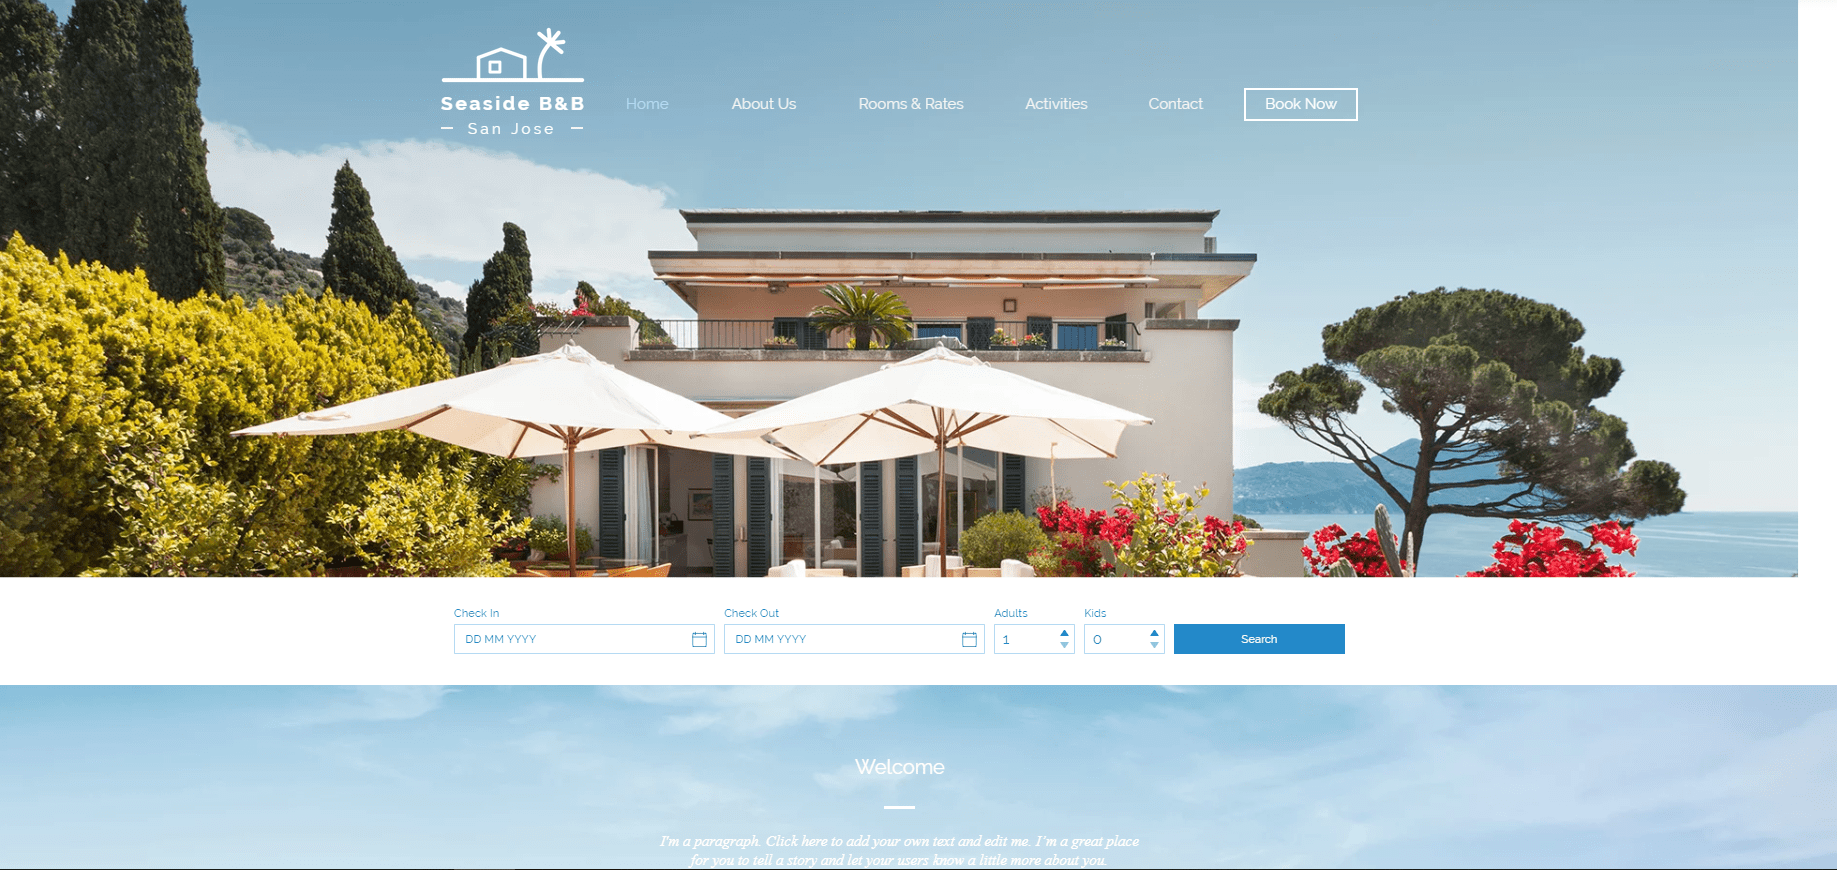 10 Best Wix Templates for Hotels & Travel Websites 2021